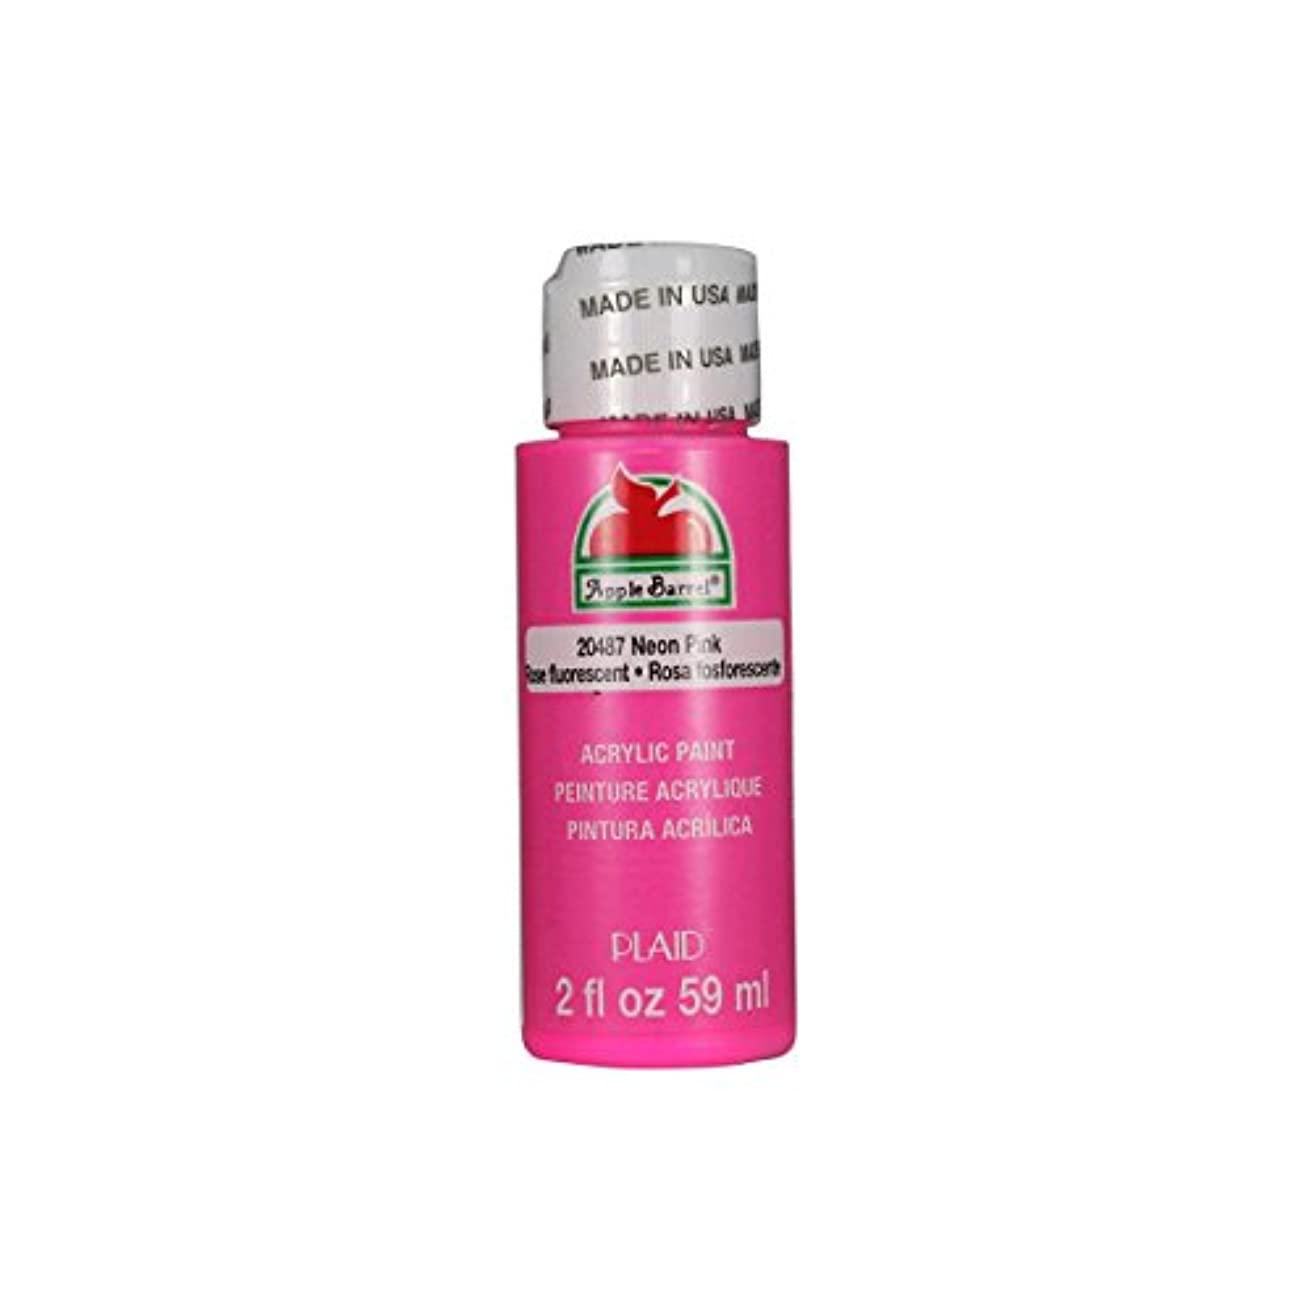 Apple Barrel Acrylic Paint in Assorted Colors (2 oz), 20487, Neon Pink